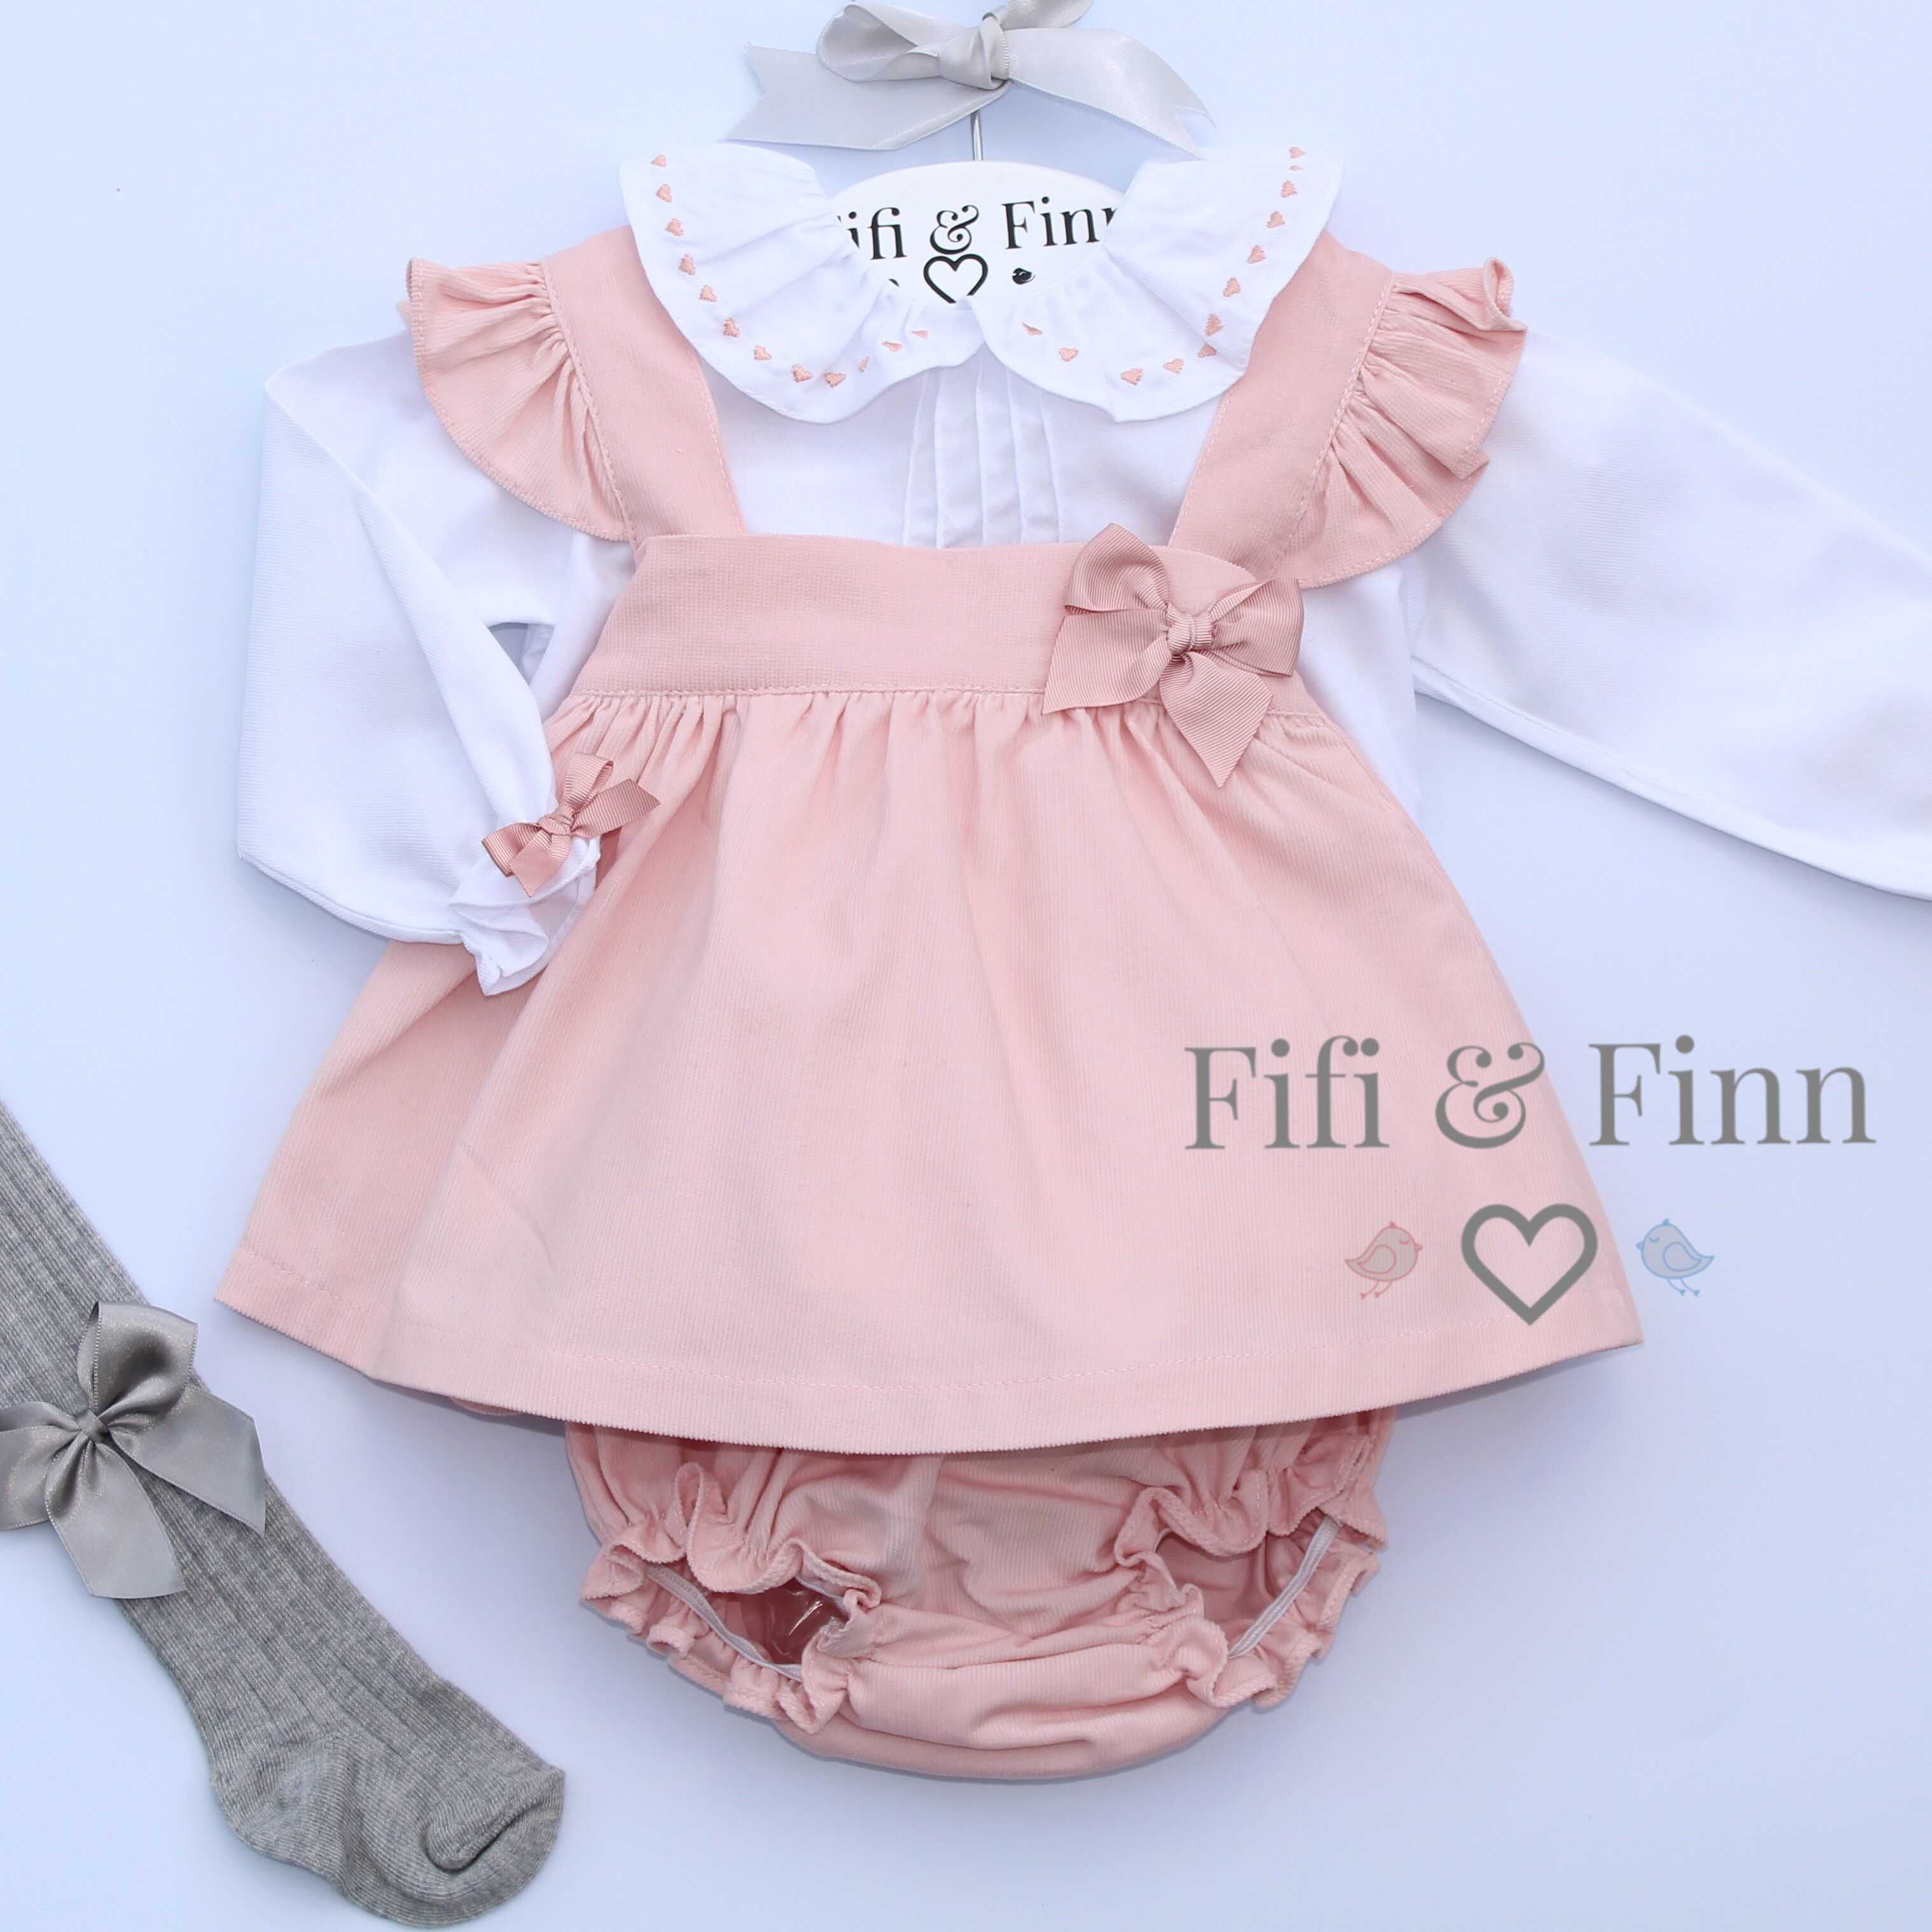 Spanish Style Beautiful Baby Girl Pink and White Romper.